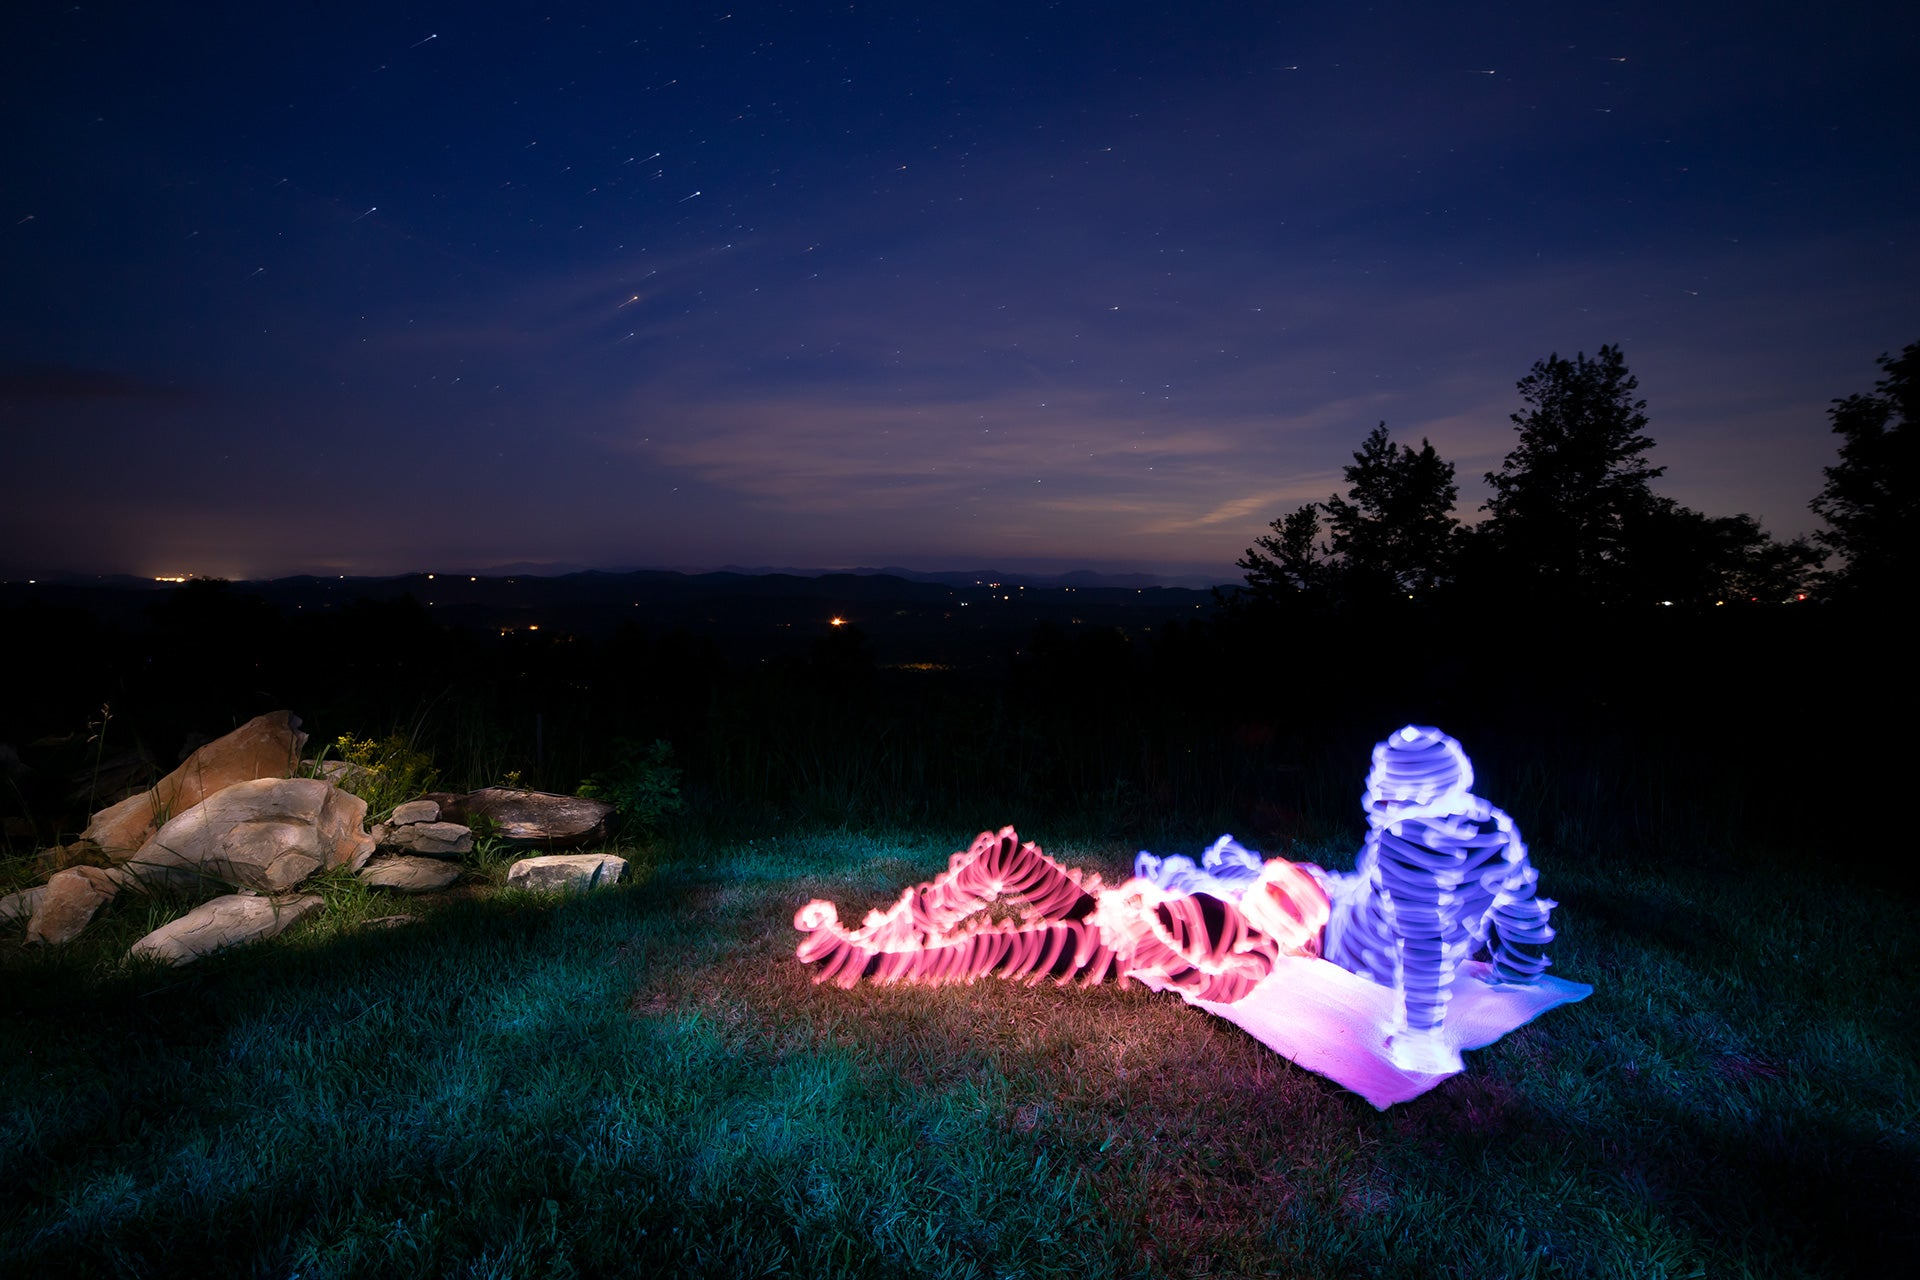 Light Painting a Picnic Under The Stars